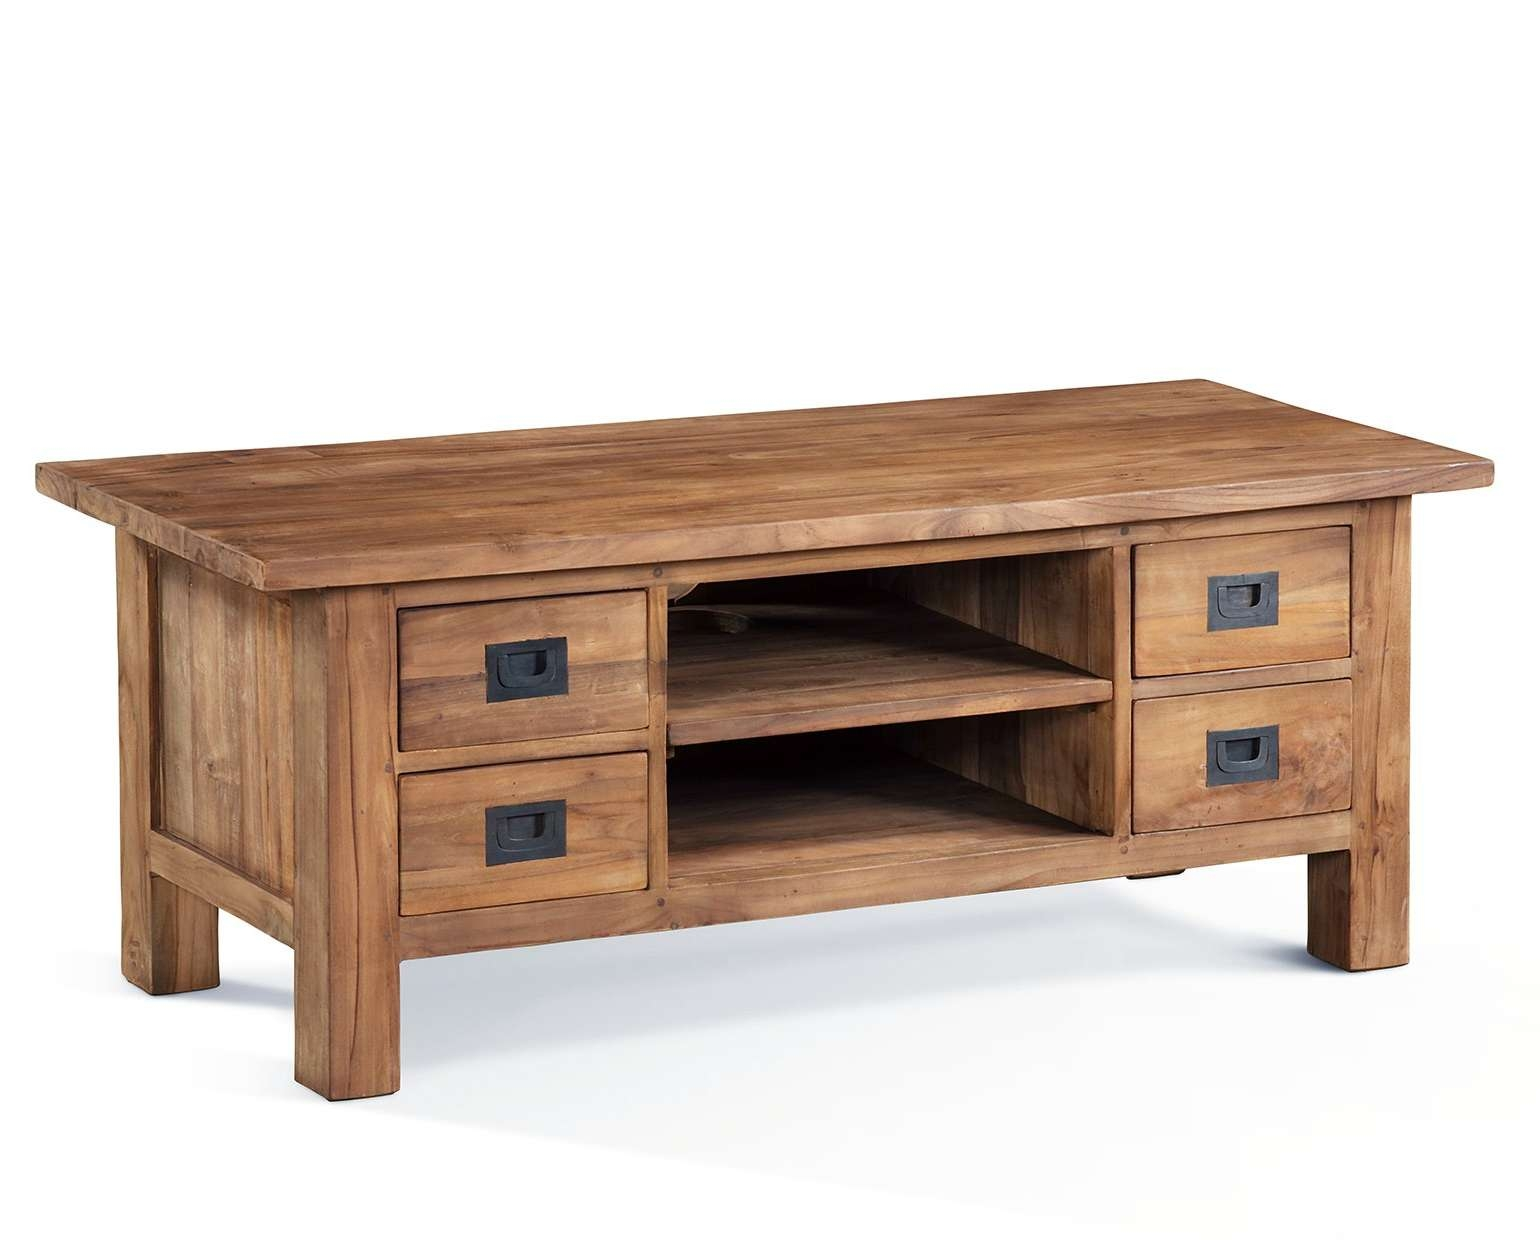 Lifestyle Long Low Tv Cabinet – Raft Furniture, London Within Long Low Tv Cabinets (View 14 of 20)